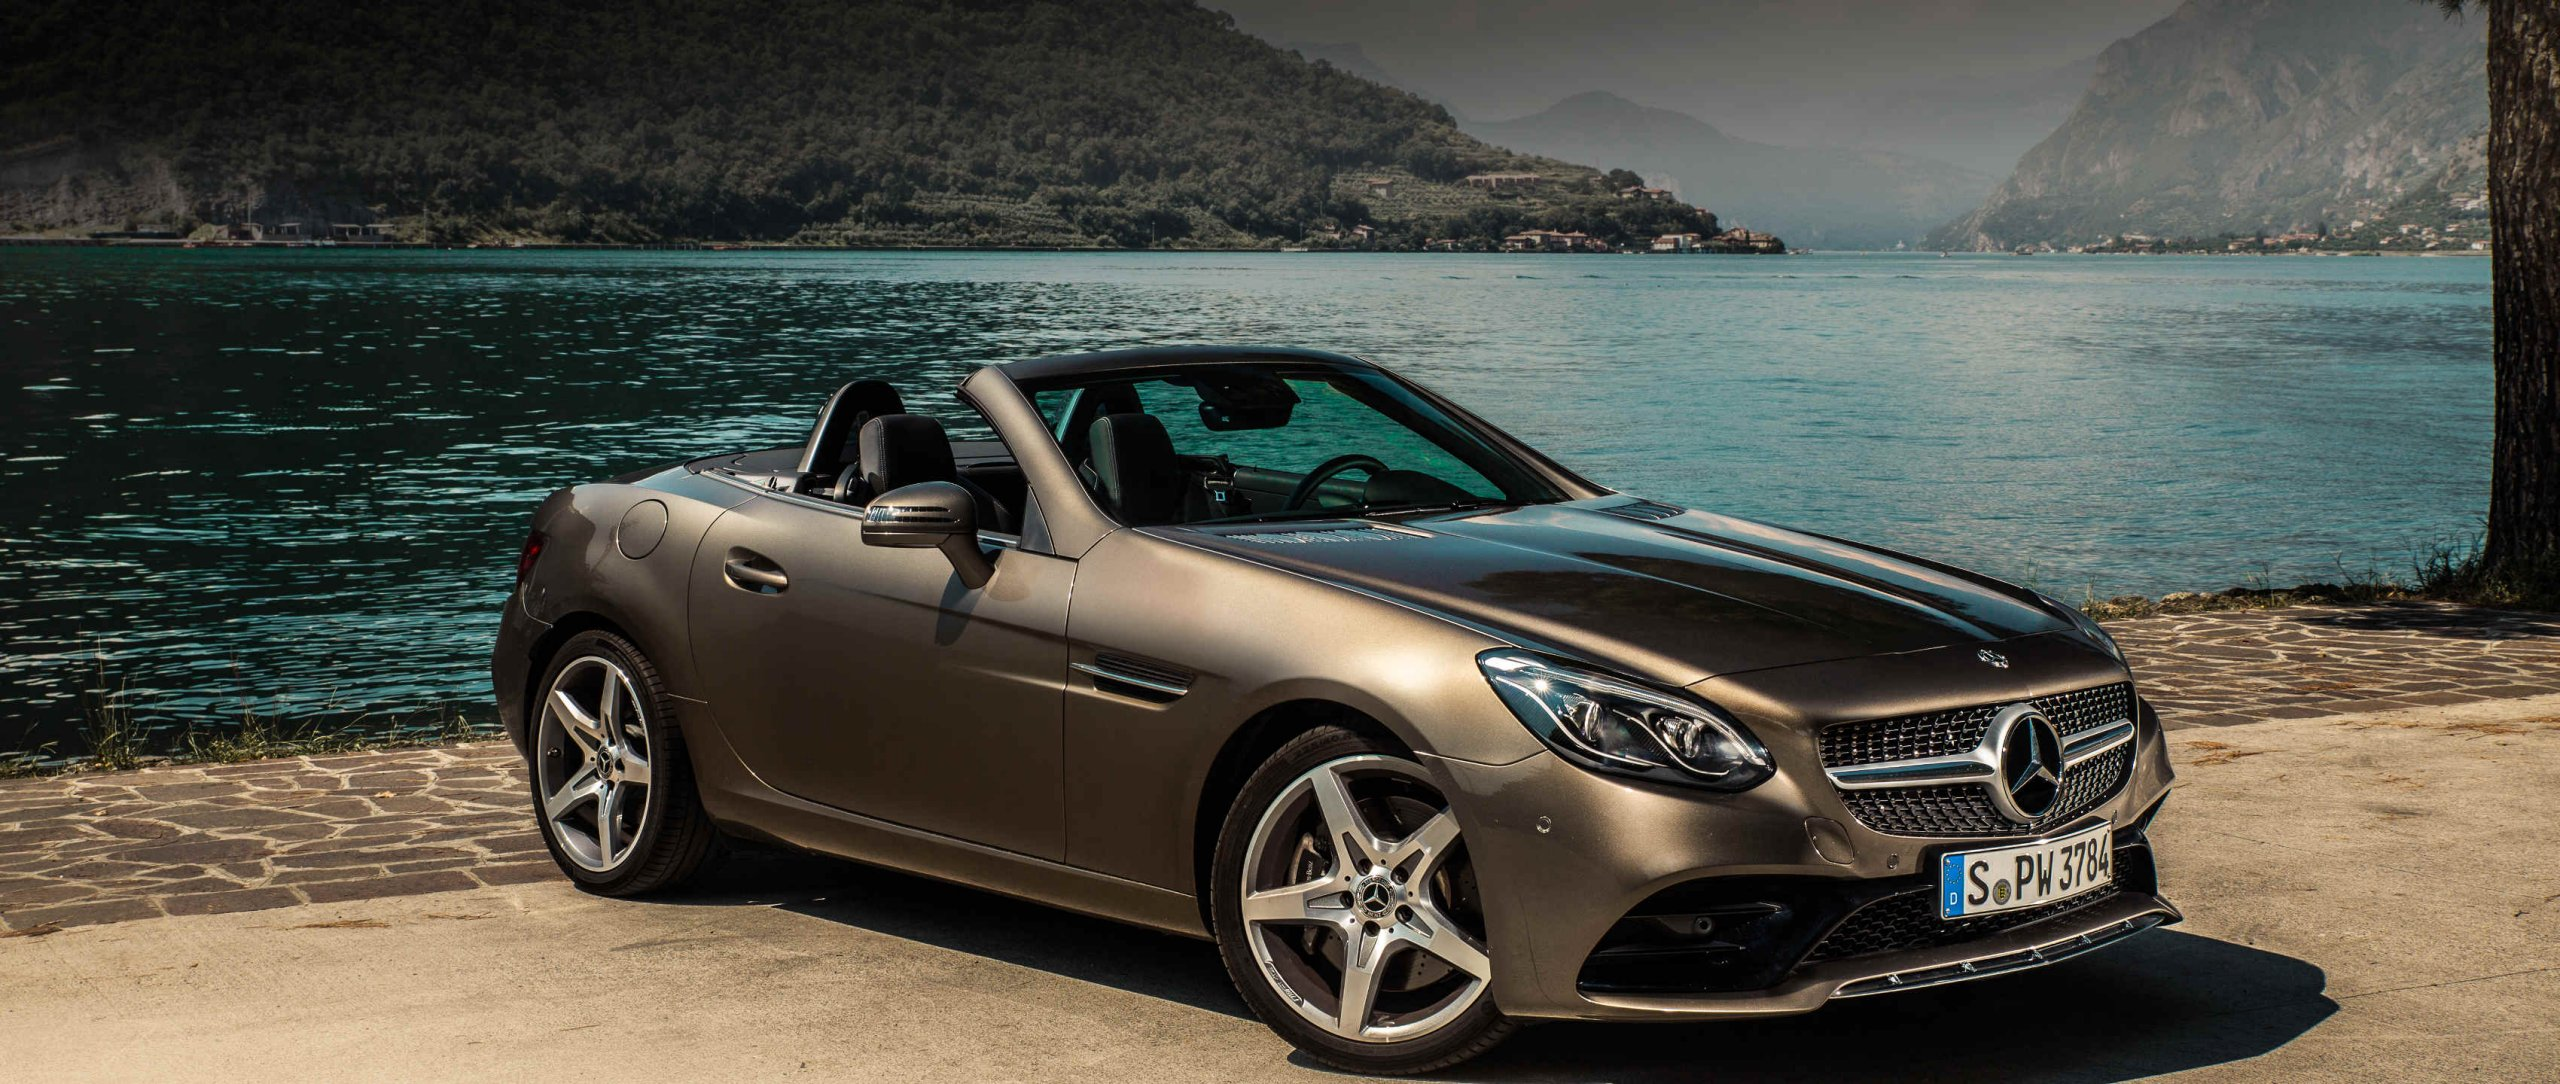 Front view of the Mercedes-Benz SLC 300 Roadster (R 172) in indium grey metallic with 18-inch AMG 5-spoke light-alloy wheels in front of a lake.